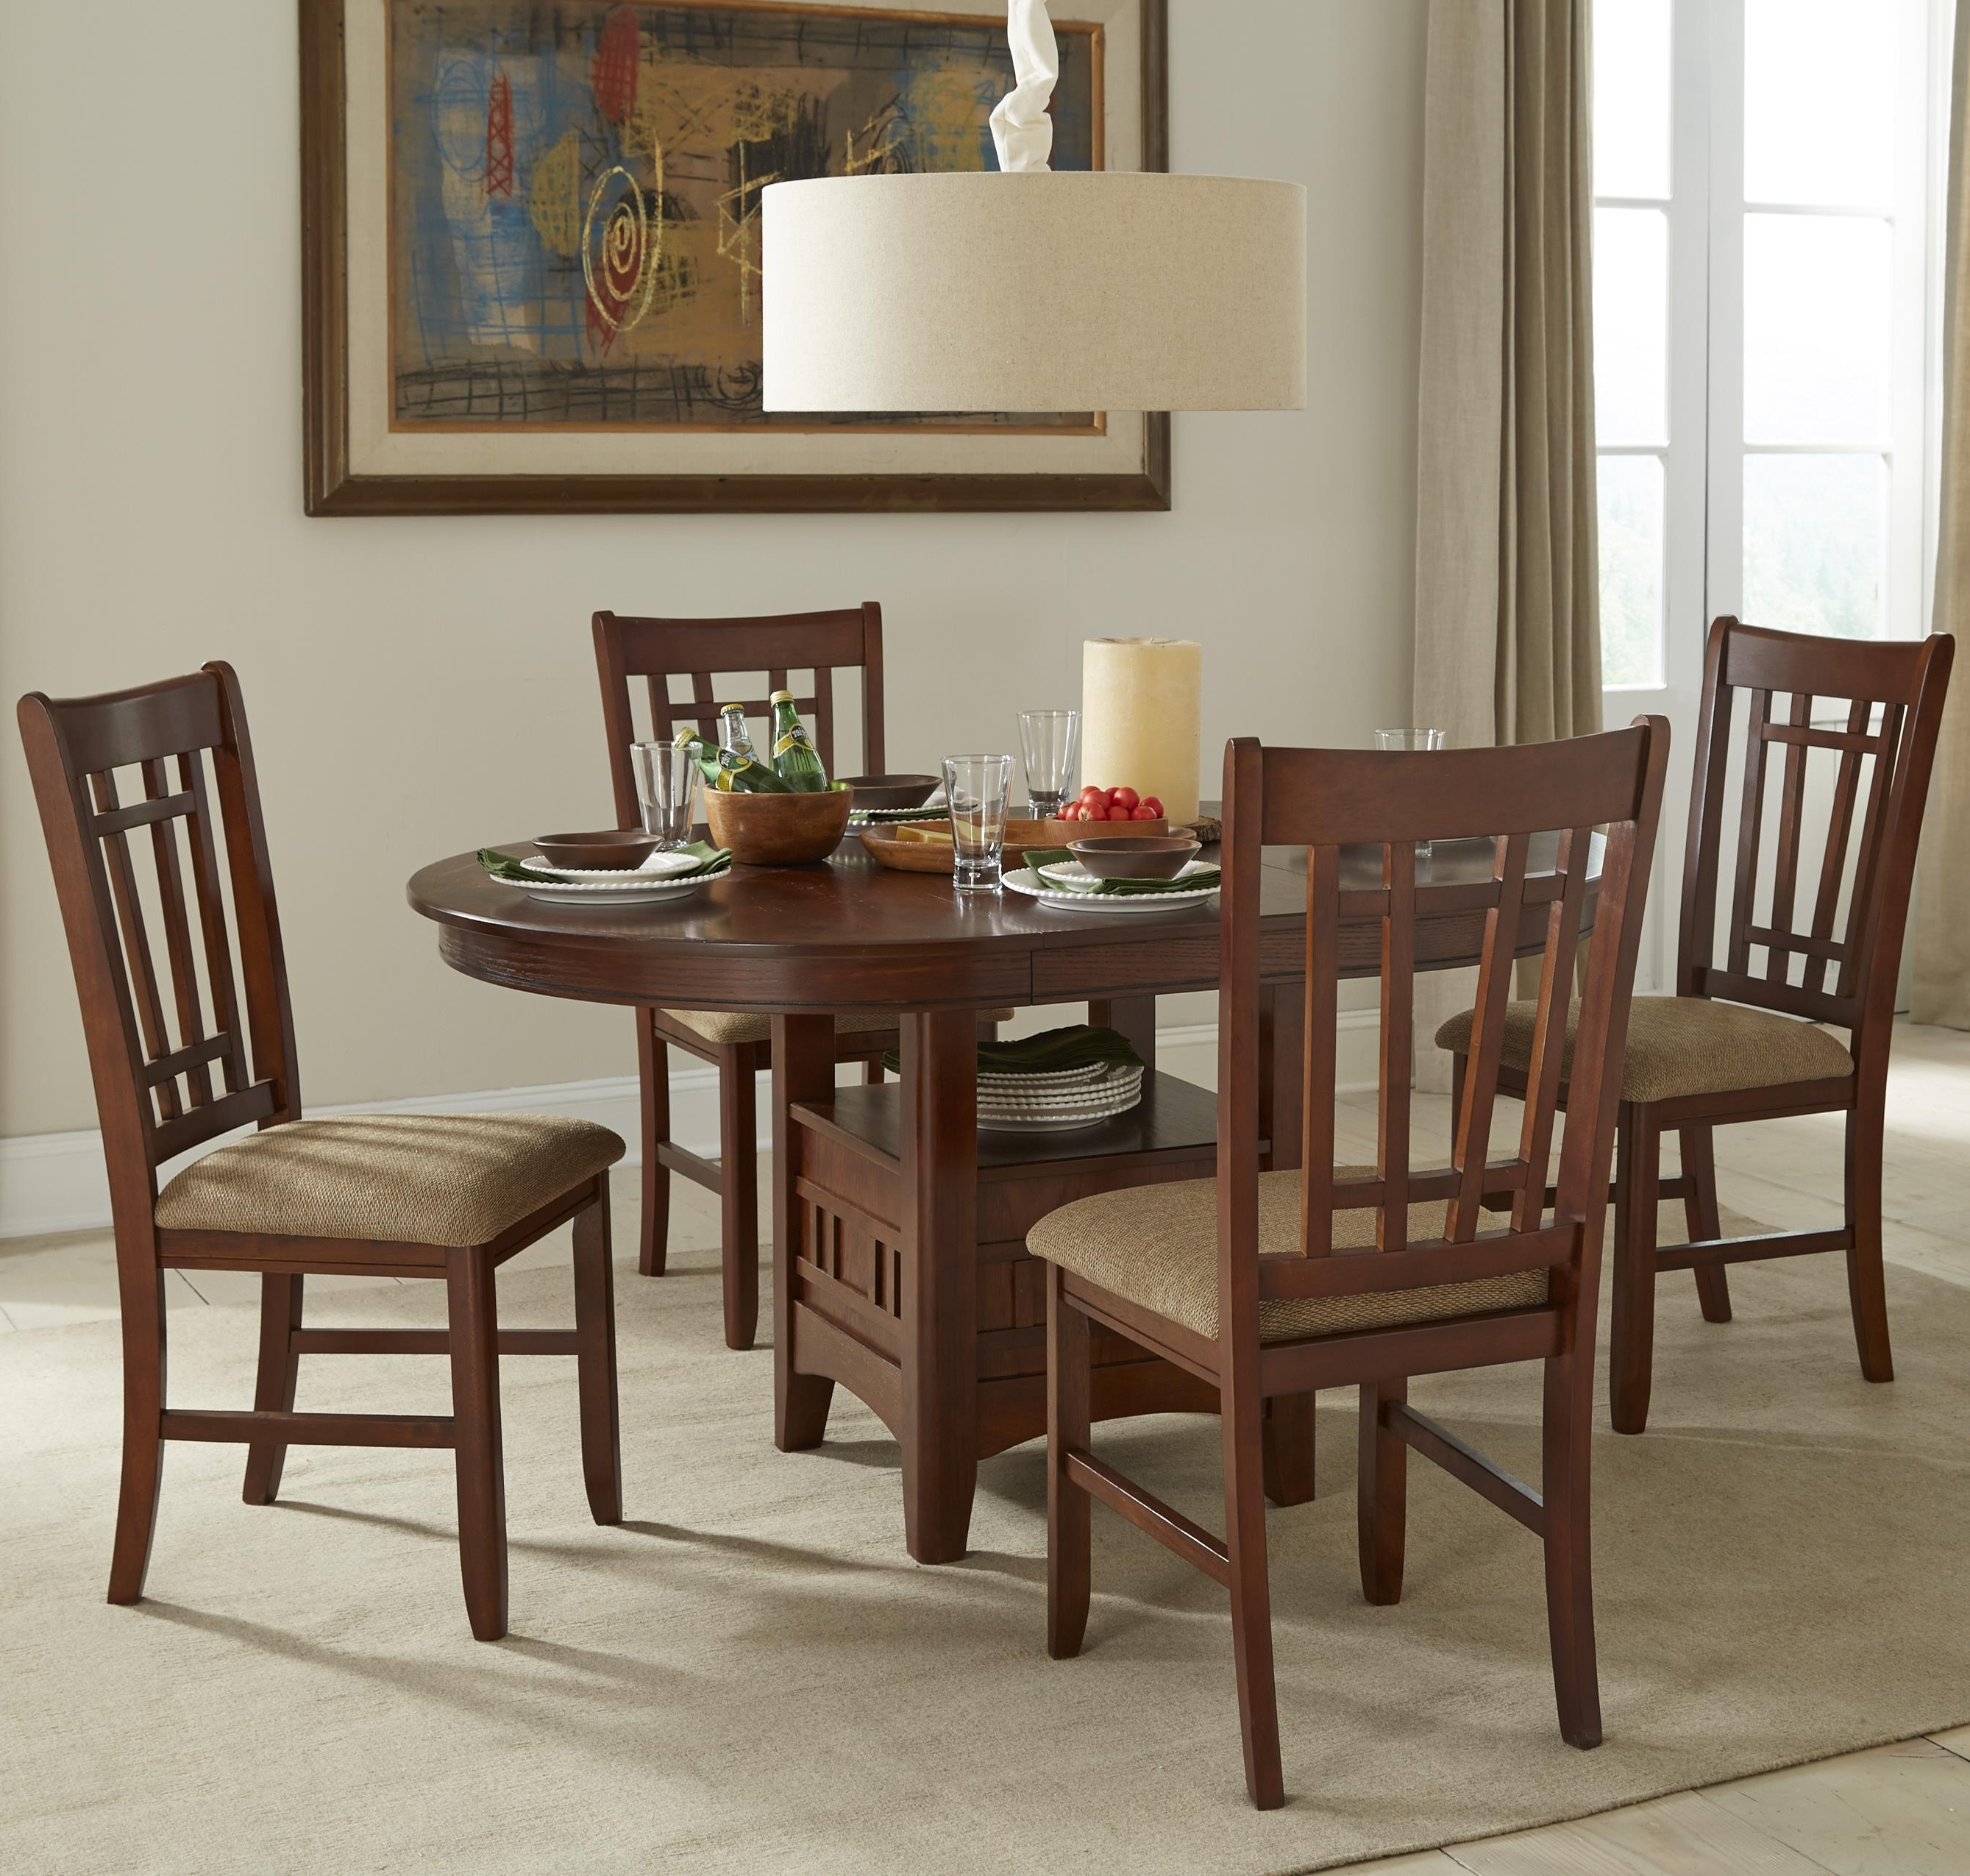 Well Liked Parquet 6 Piece Dining Sets In Oval Dining Table Set With Cushioned Side Chairsintercon (View 25 of 25)